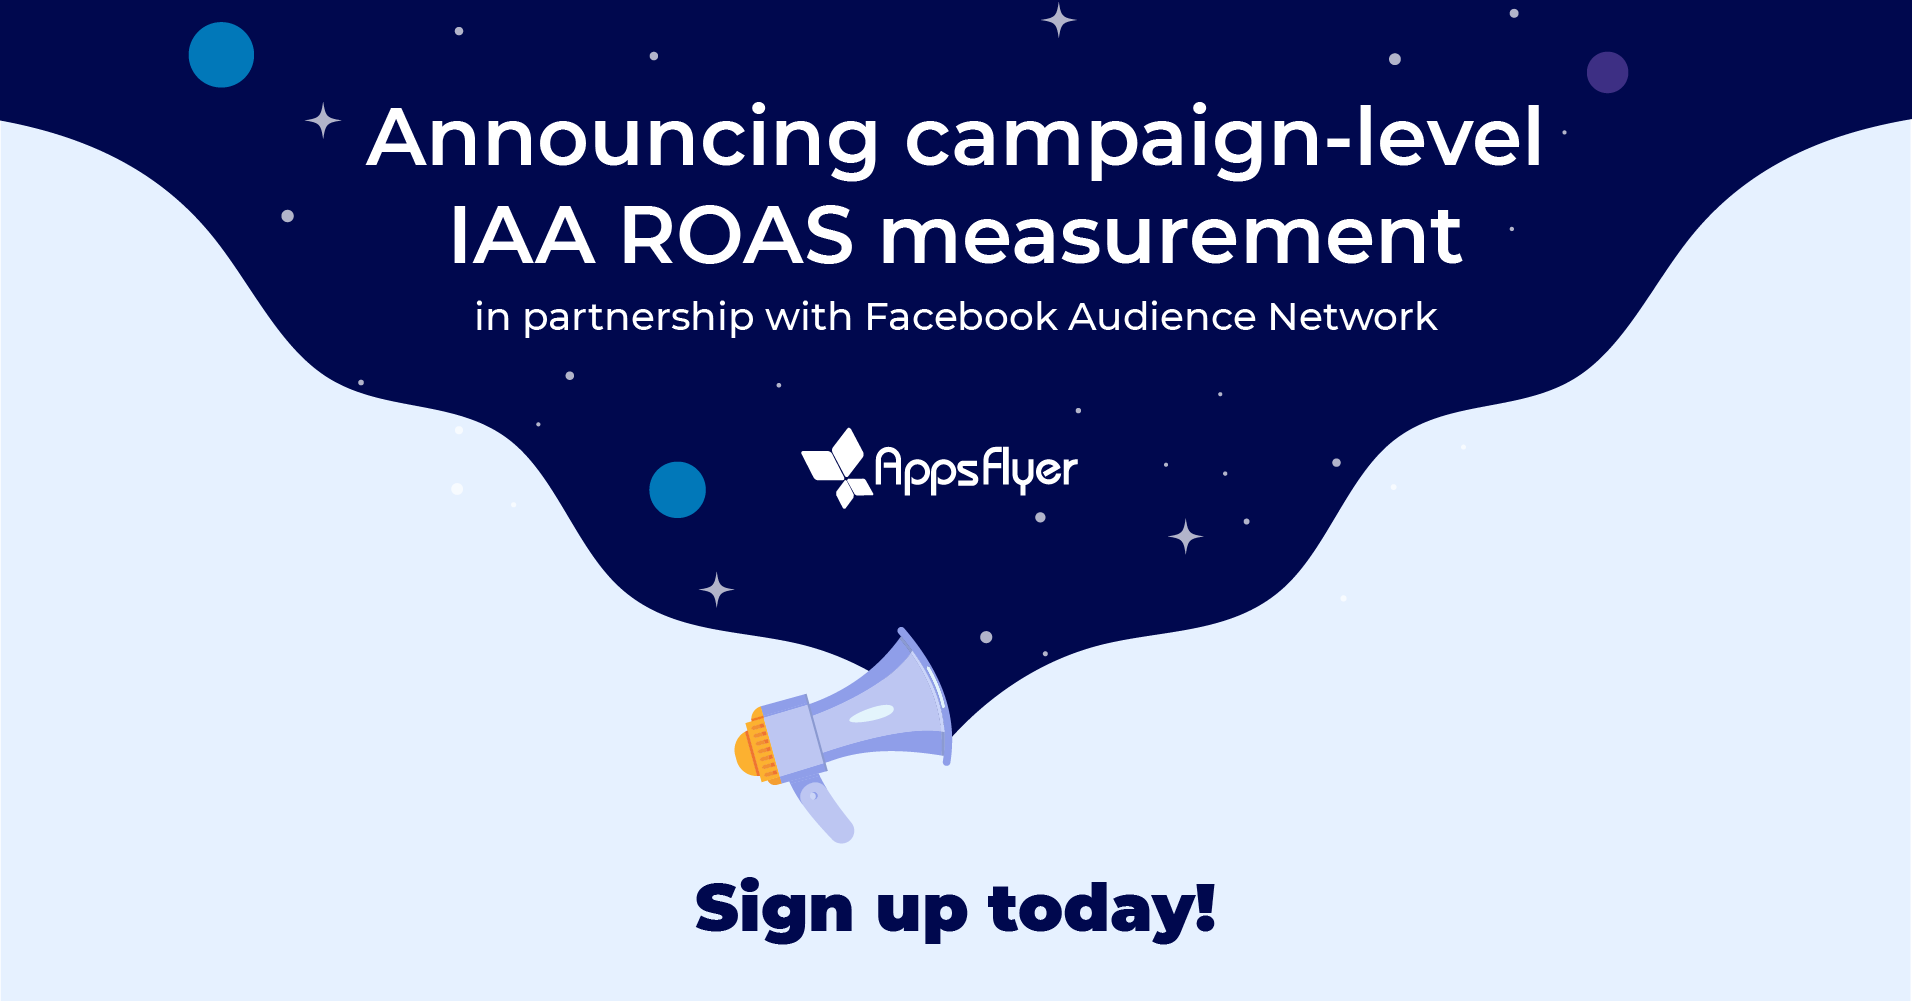 Campaign-level IAA ROAS measurement in partnership with Facebook Audience Network